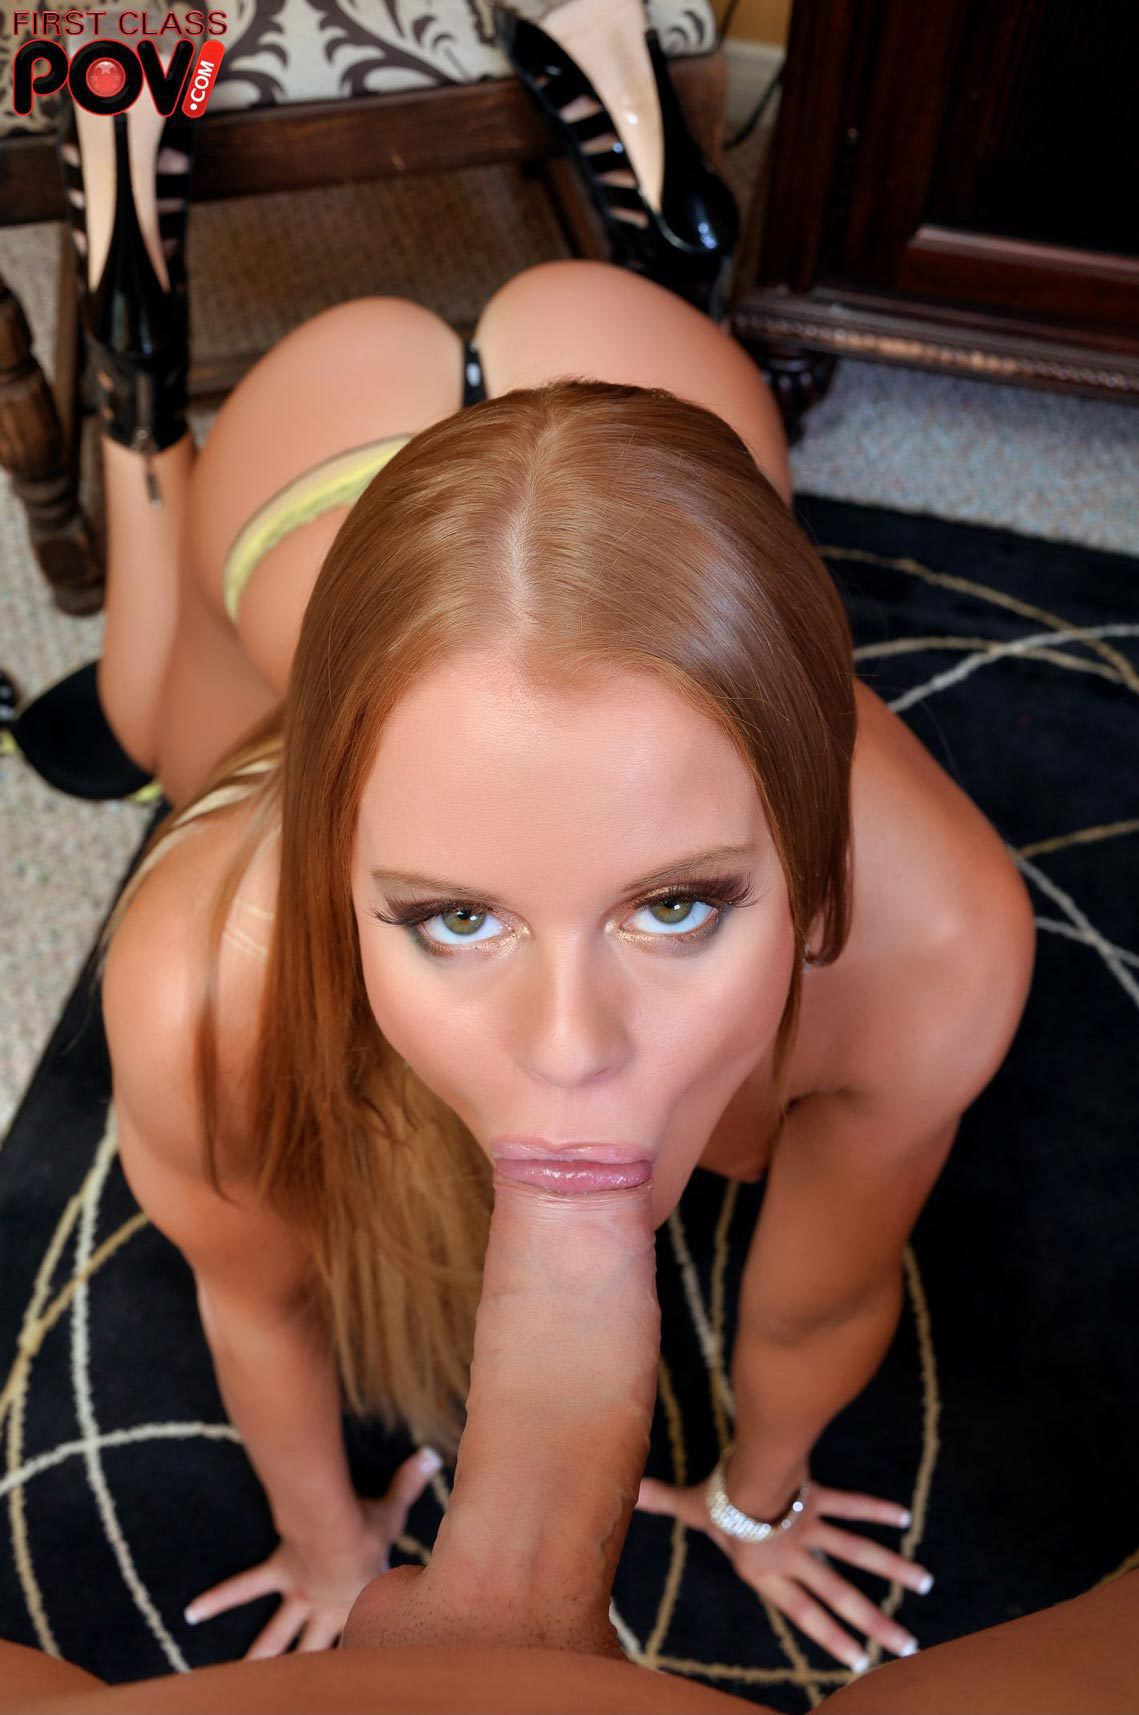 crazy mouth meat many cocks mobile porno videos